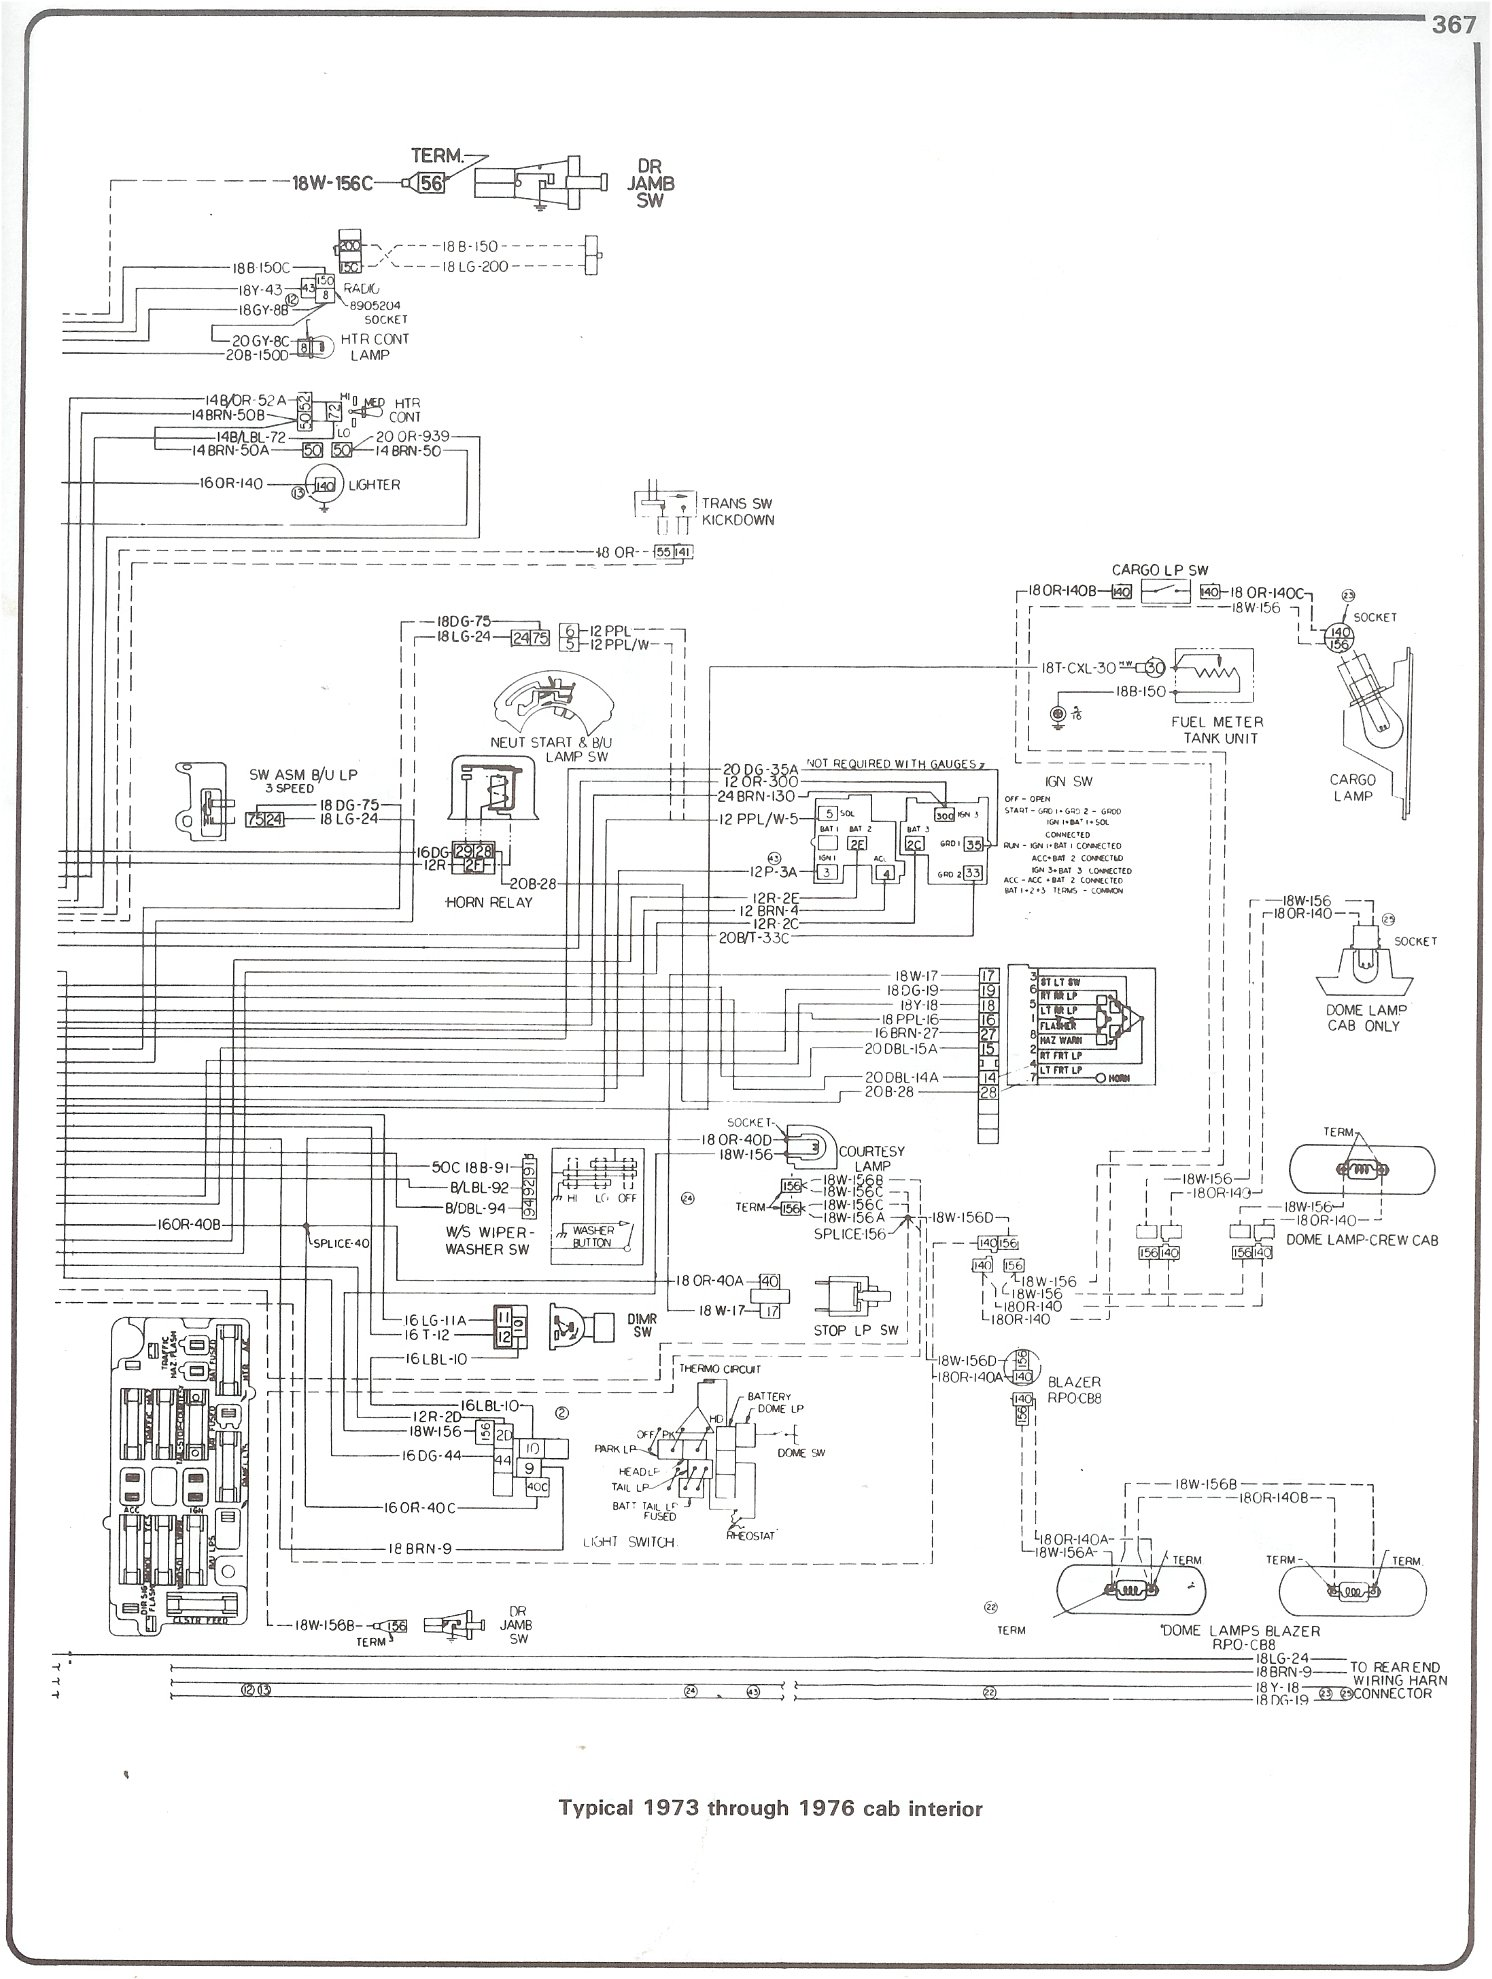 73 76_cab_inter complete 73 87 wiring diagrams 1990 suburban instrument cluster wiring diagram at crackthecode.co